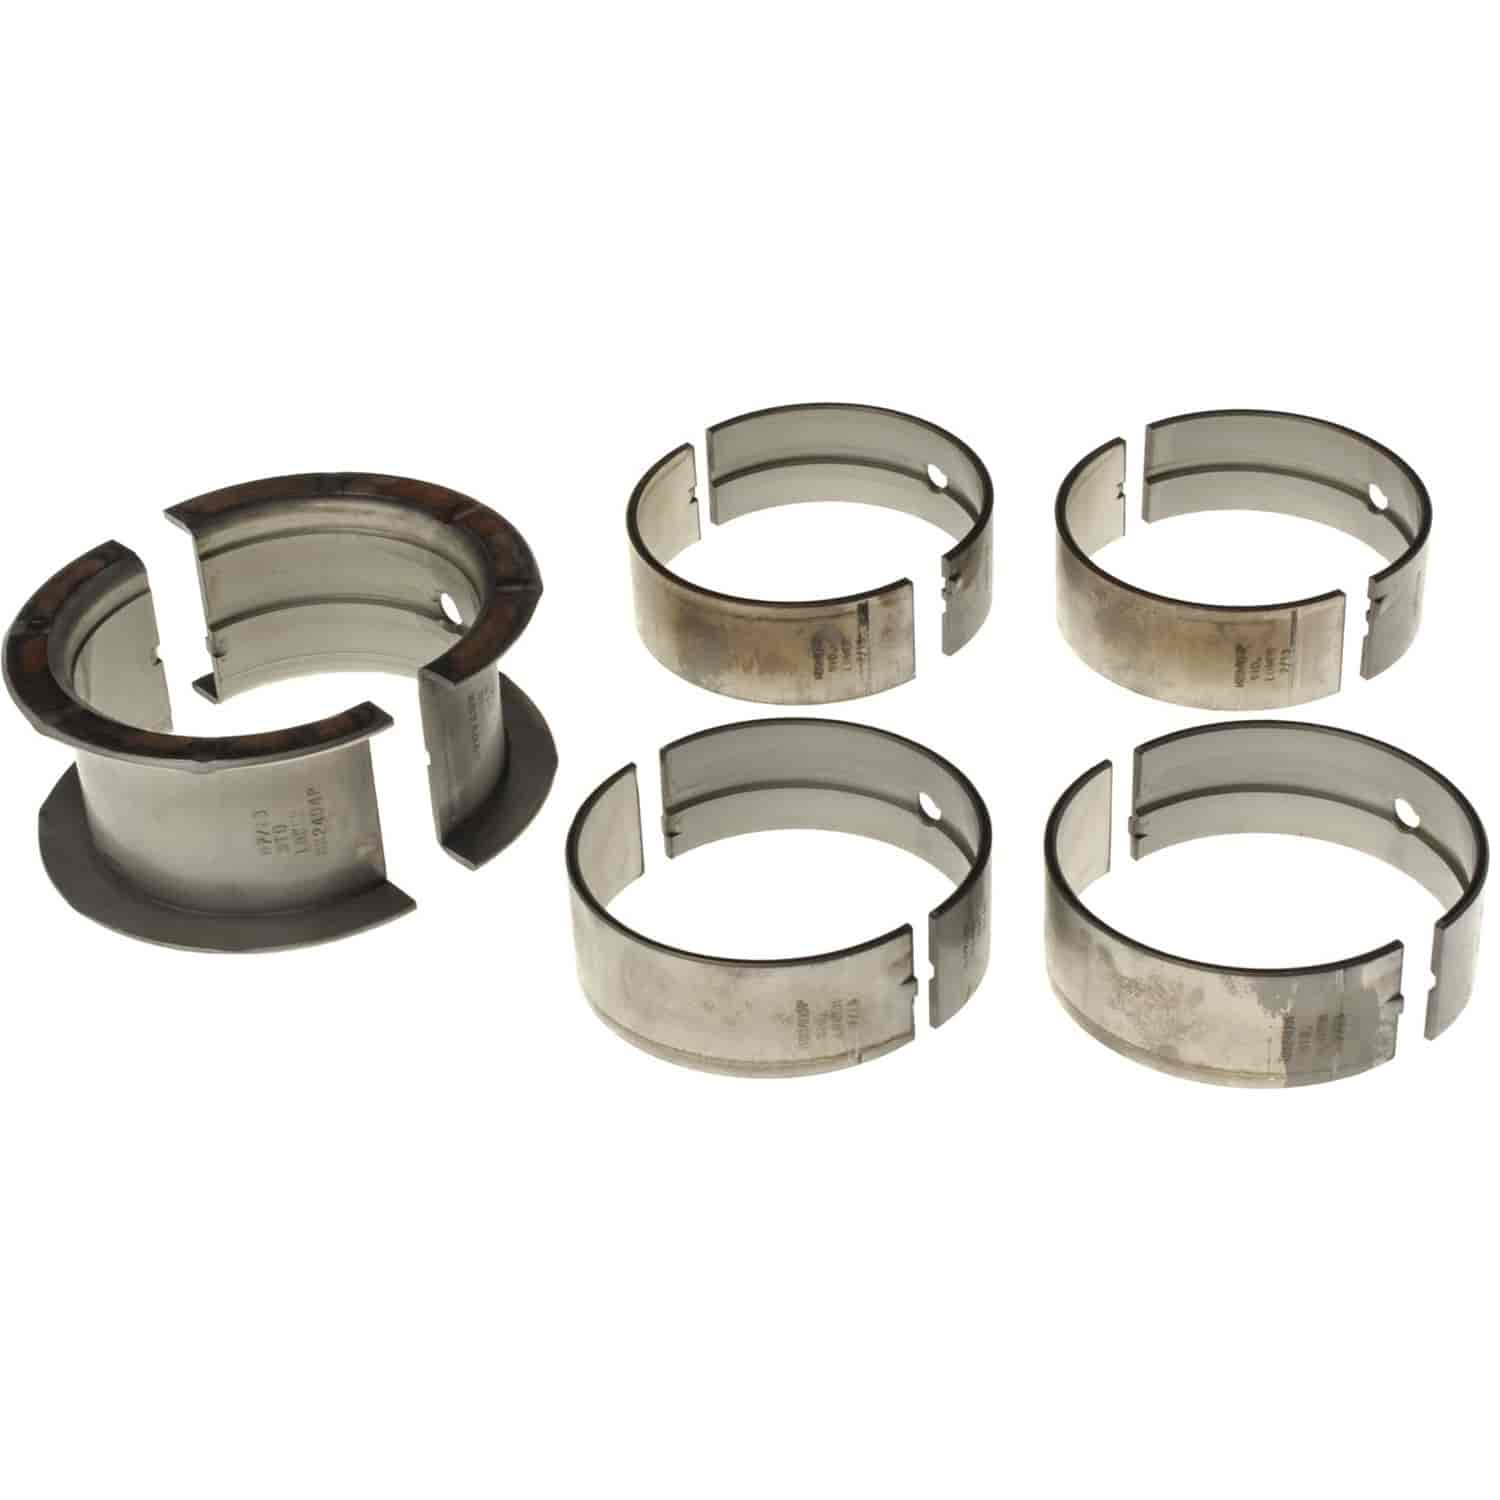 Clevite MS829P40 - Clevite 77 High-Performance Bearings